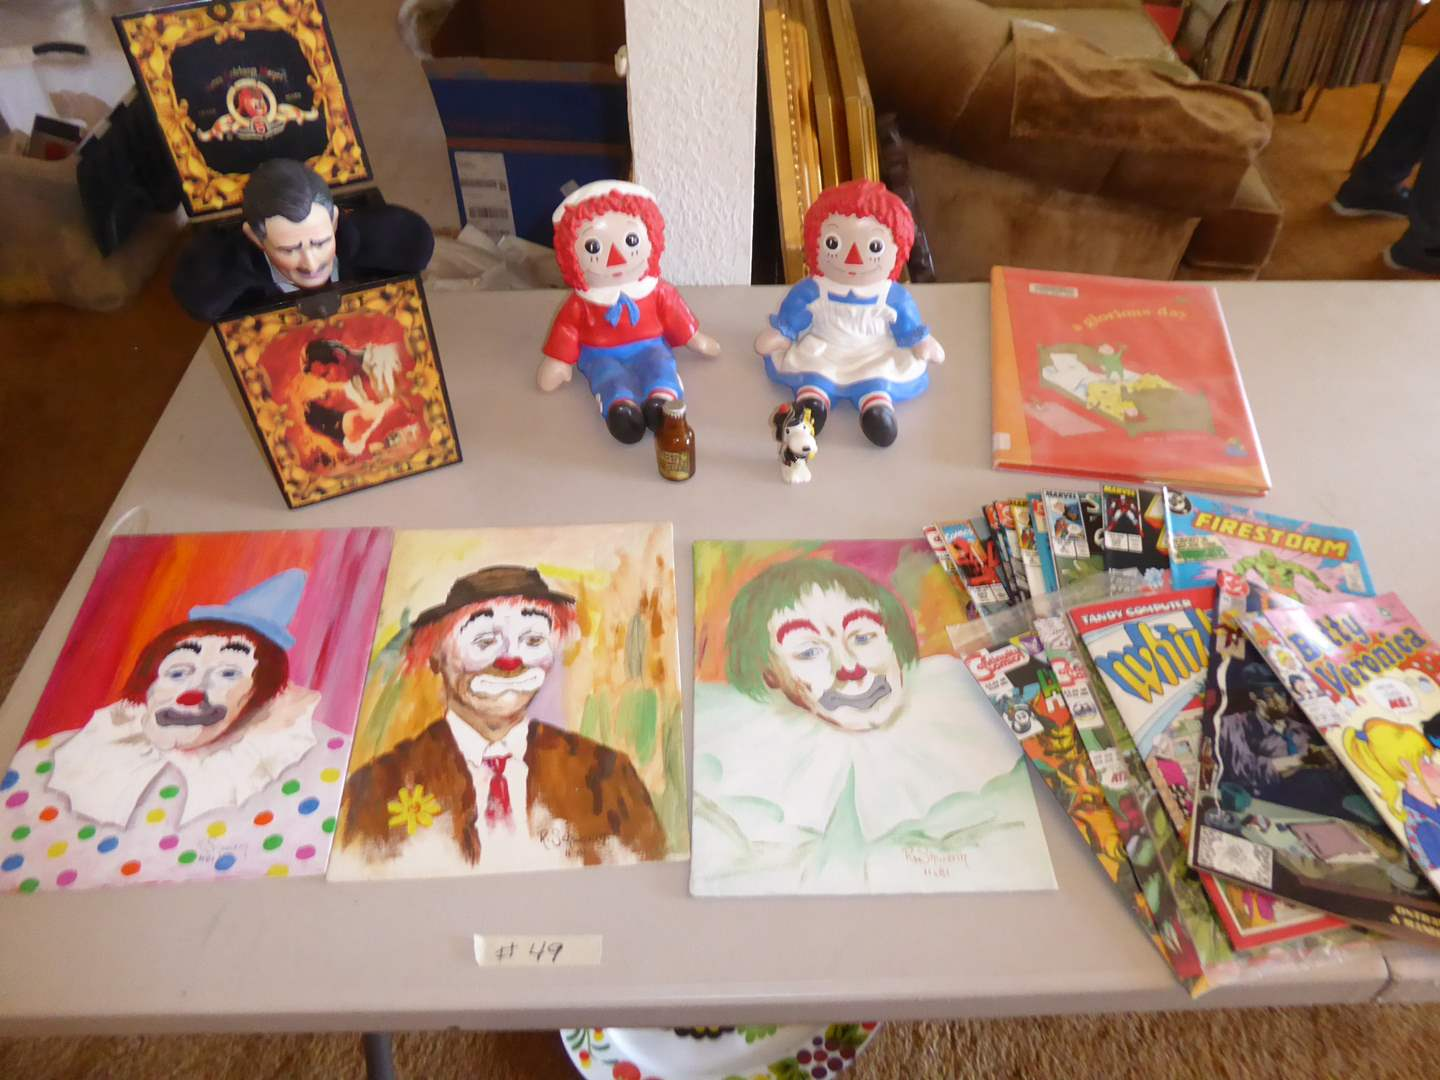 Lot # 49 - Gone With The Wind Musical Box, Plaster Raggedy Ann & Andy Figurines & Comic Books  (main image)